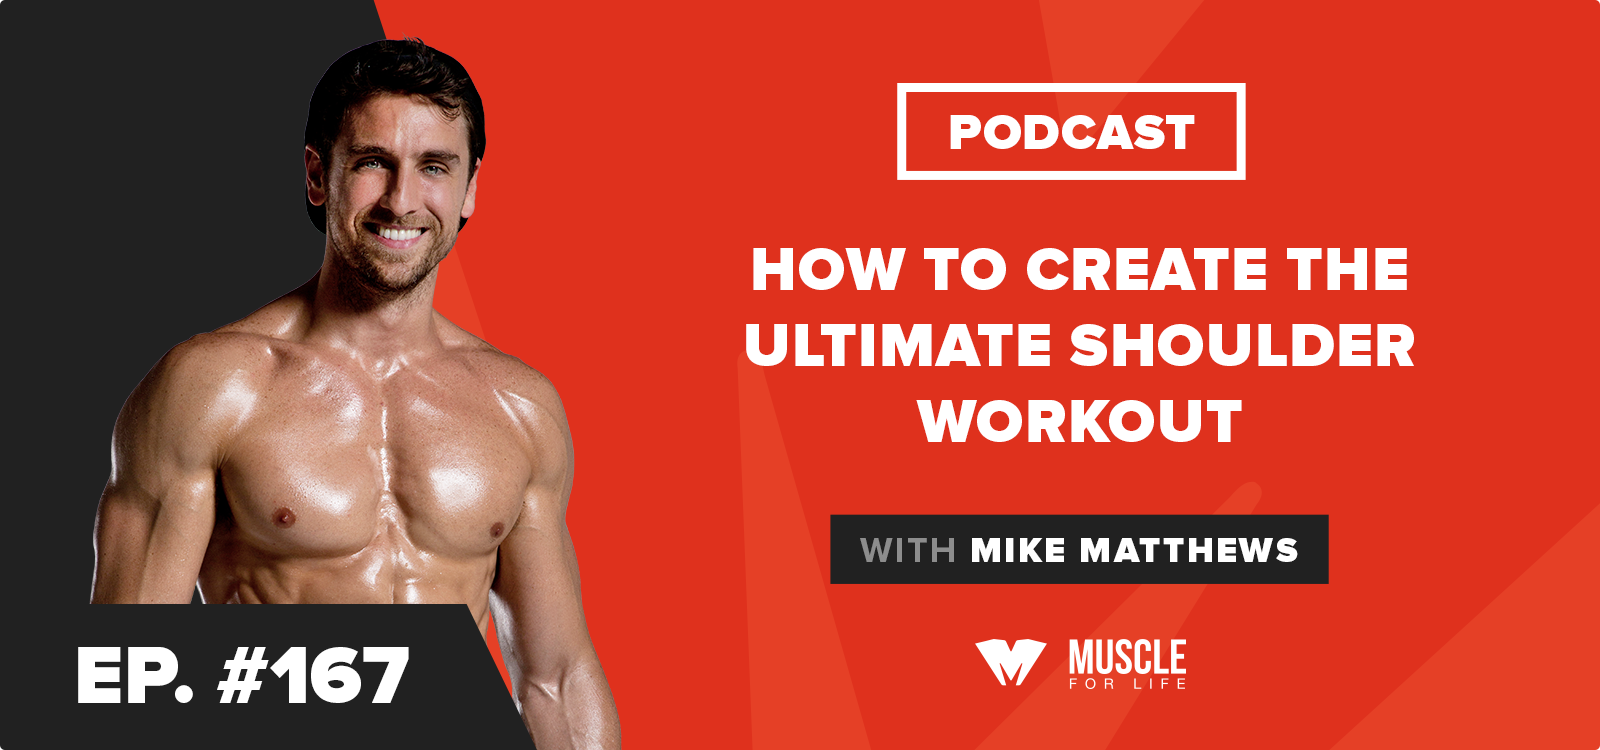 How to Create the Ultimate Shoulder Workout